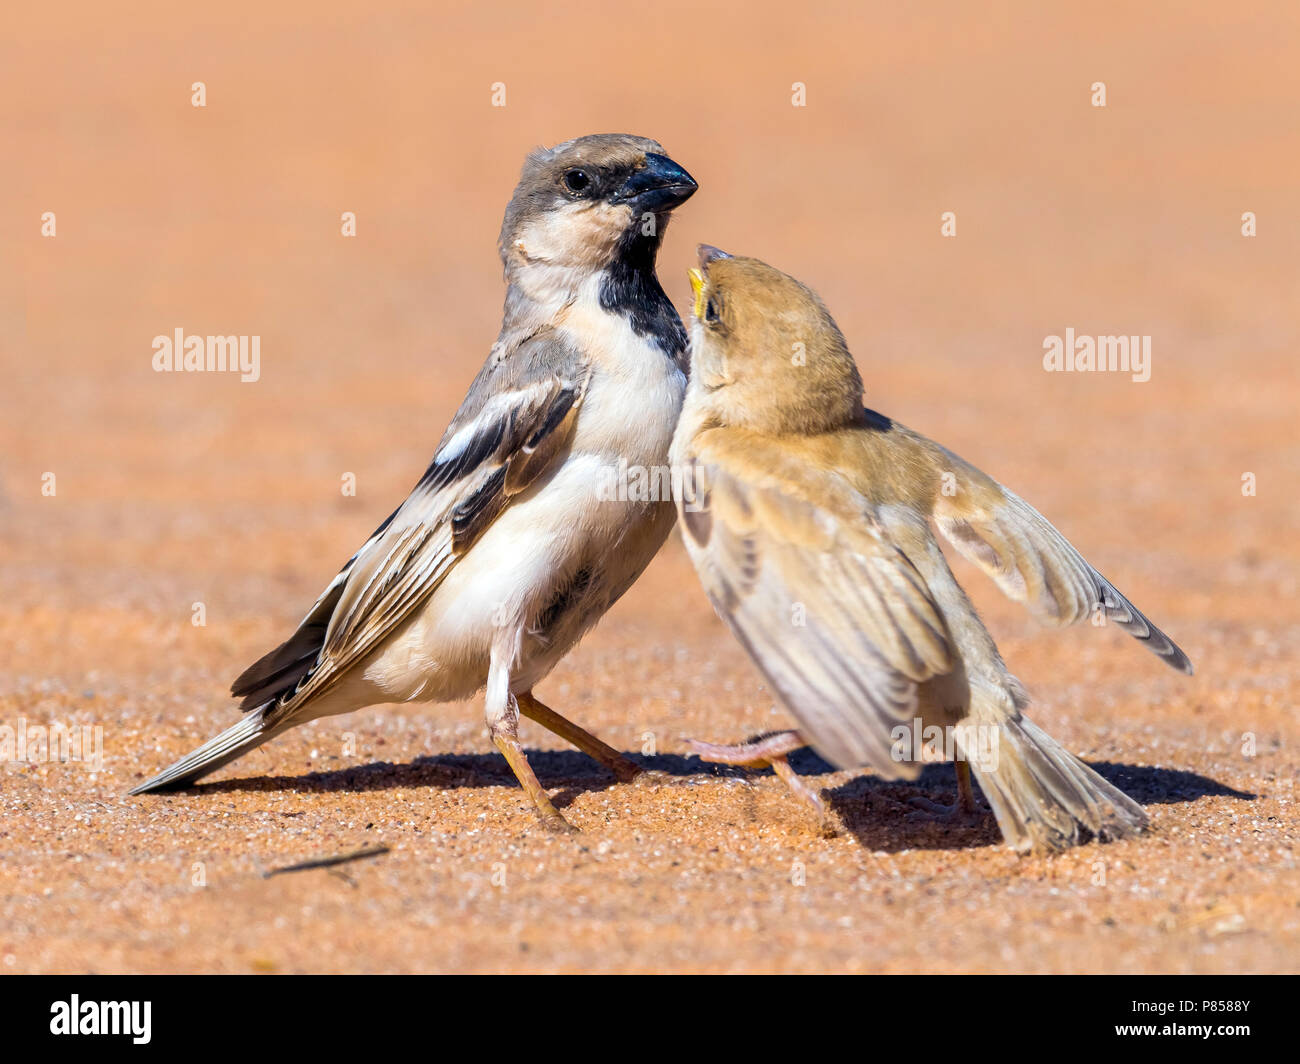 Male & juvenile Northern Desert Sparrow in Oued Jenna, Western Sahara. March 2011. - Stock Image